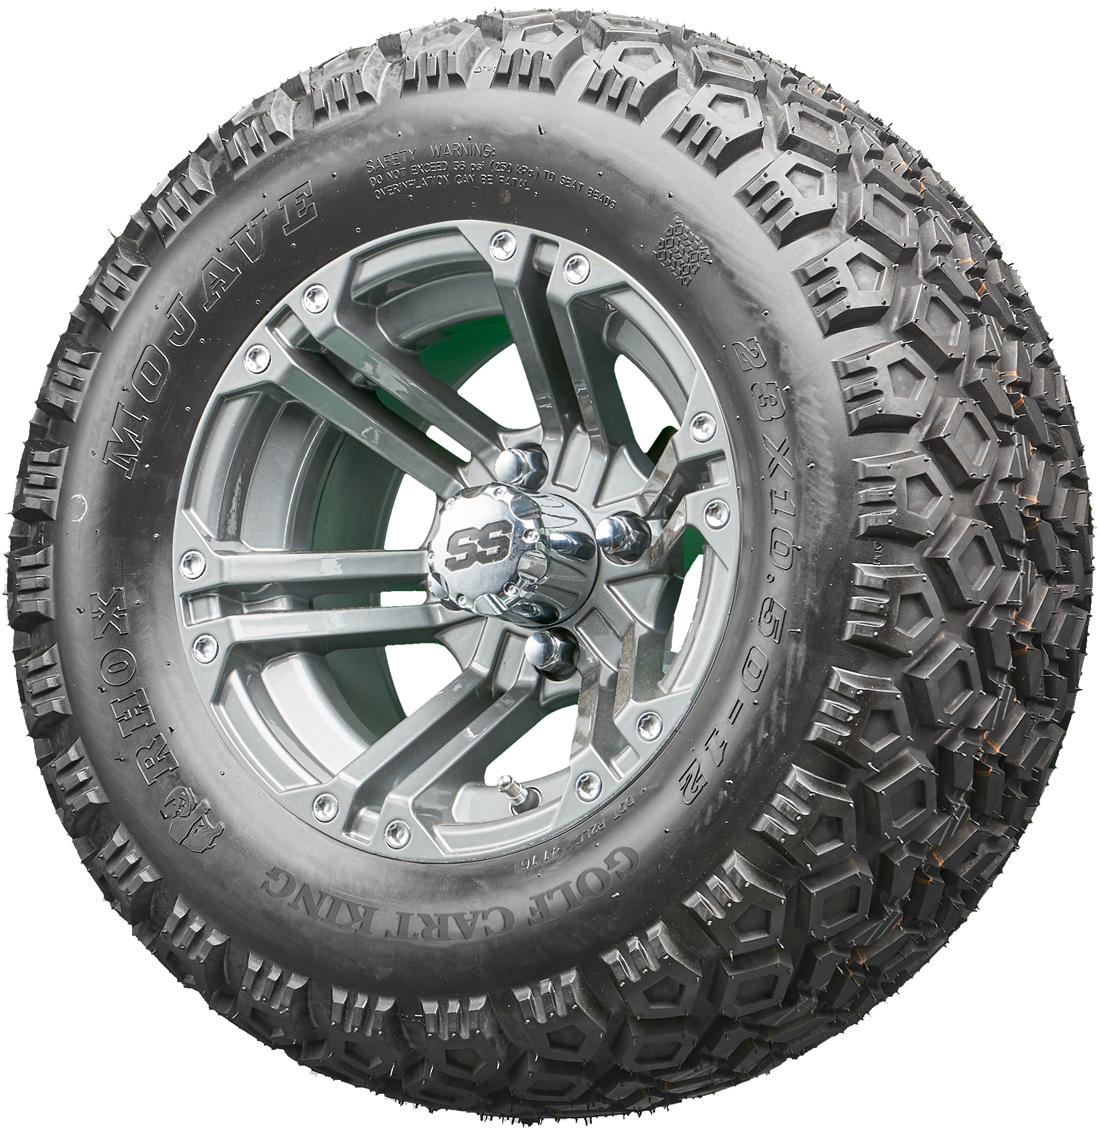 small resolution of golf cart wheels and tires rhox rx335 gun metal 12 lifted tires combo